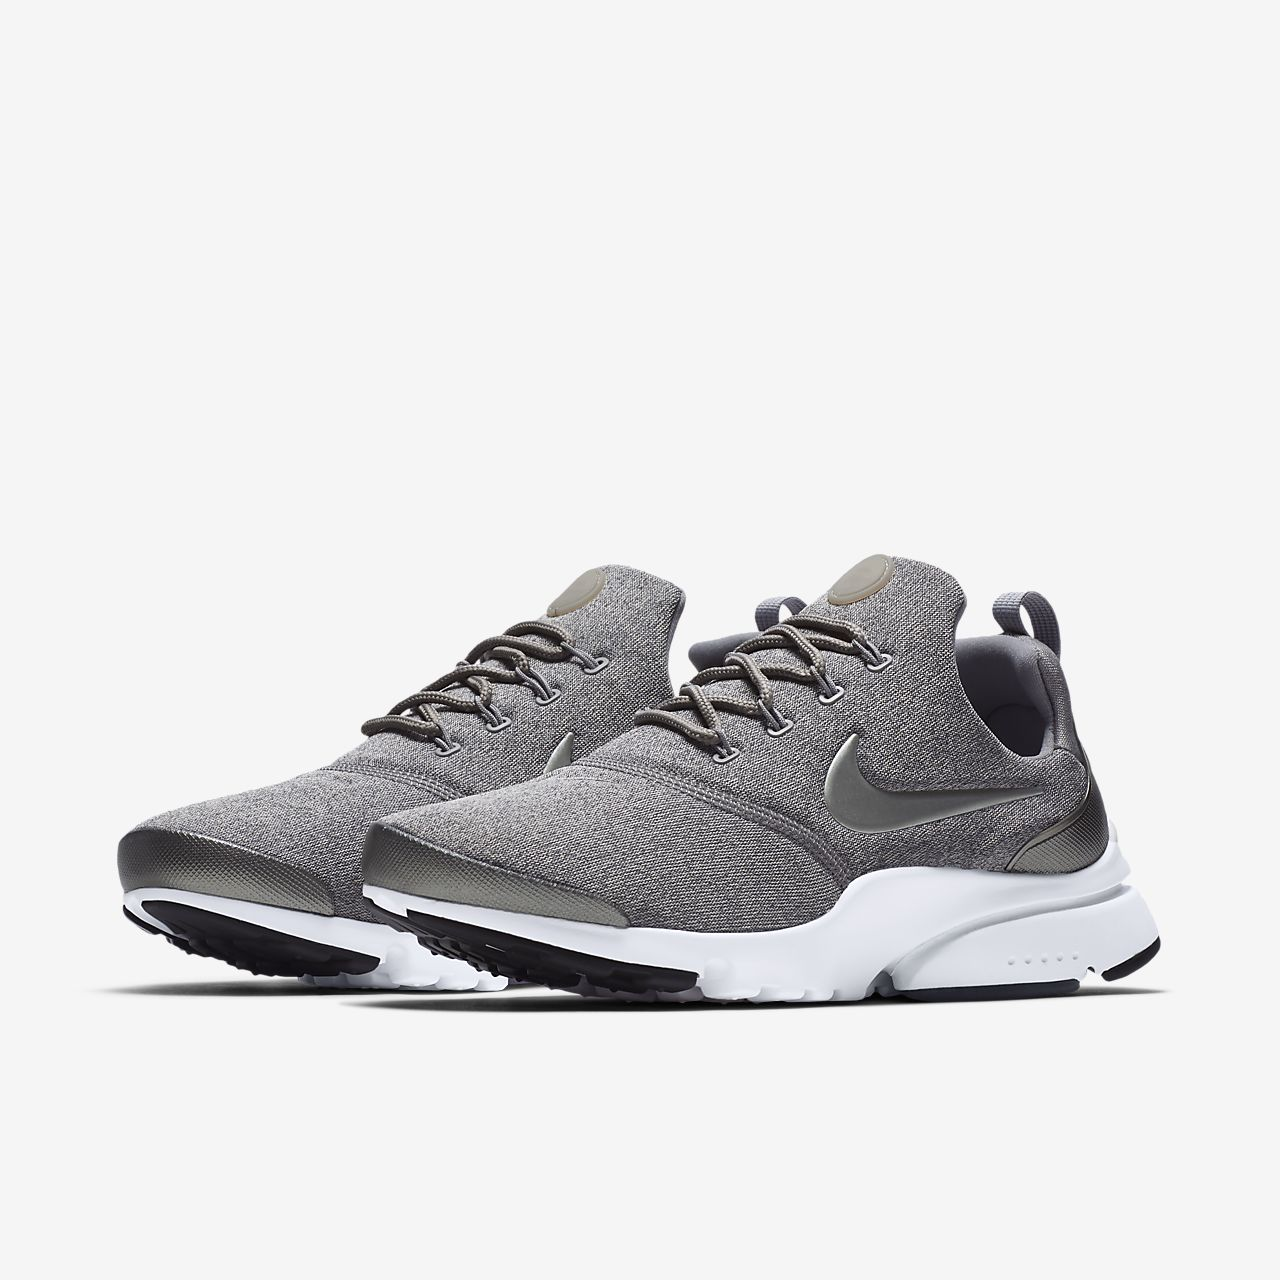 ... Nike Presto Fly SE Women's Shoe